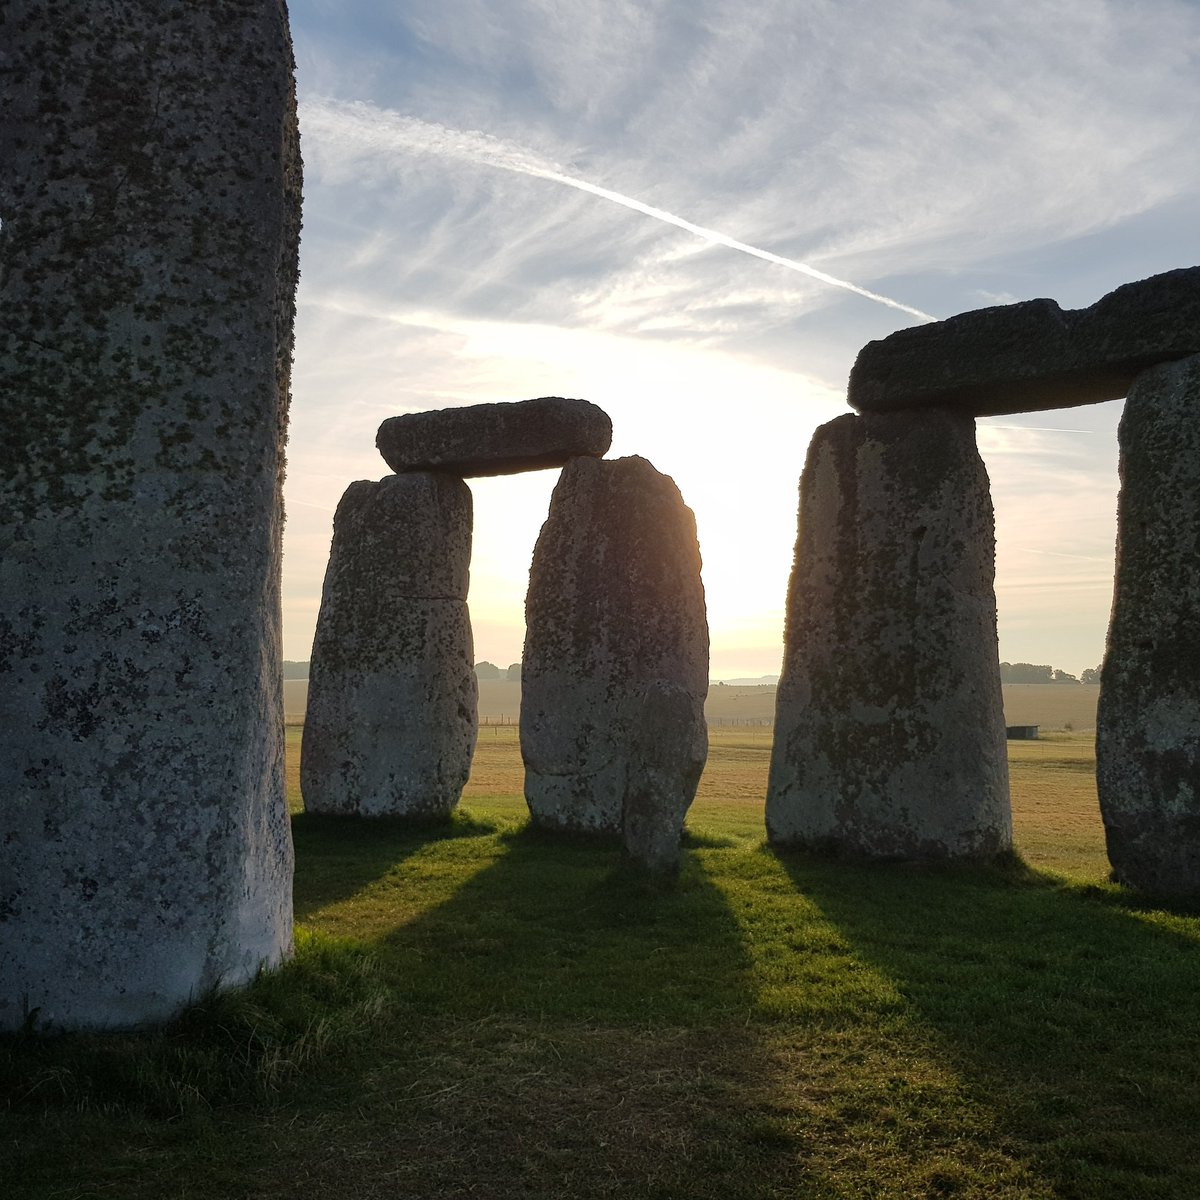 Sunrise at Stonehenge today (1st June) was at 04.55am, sunset is at 09.13pm